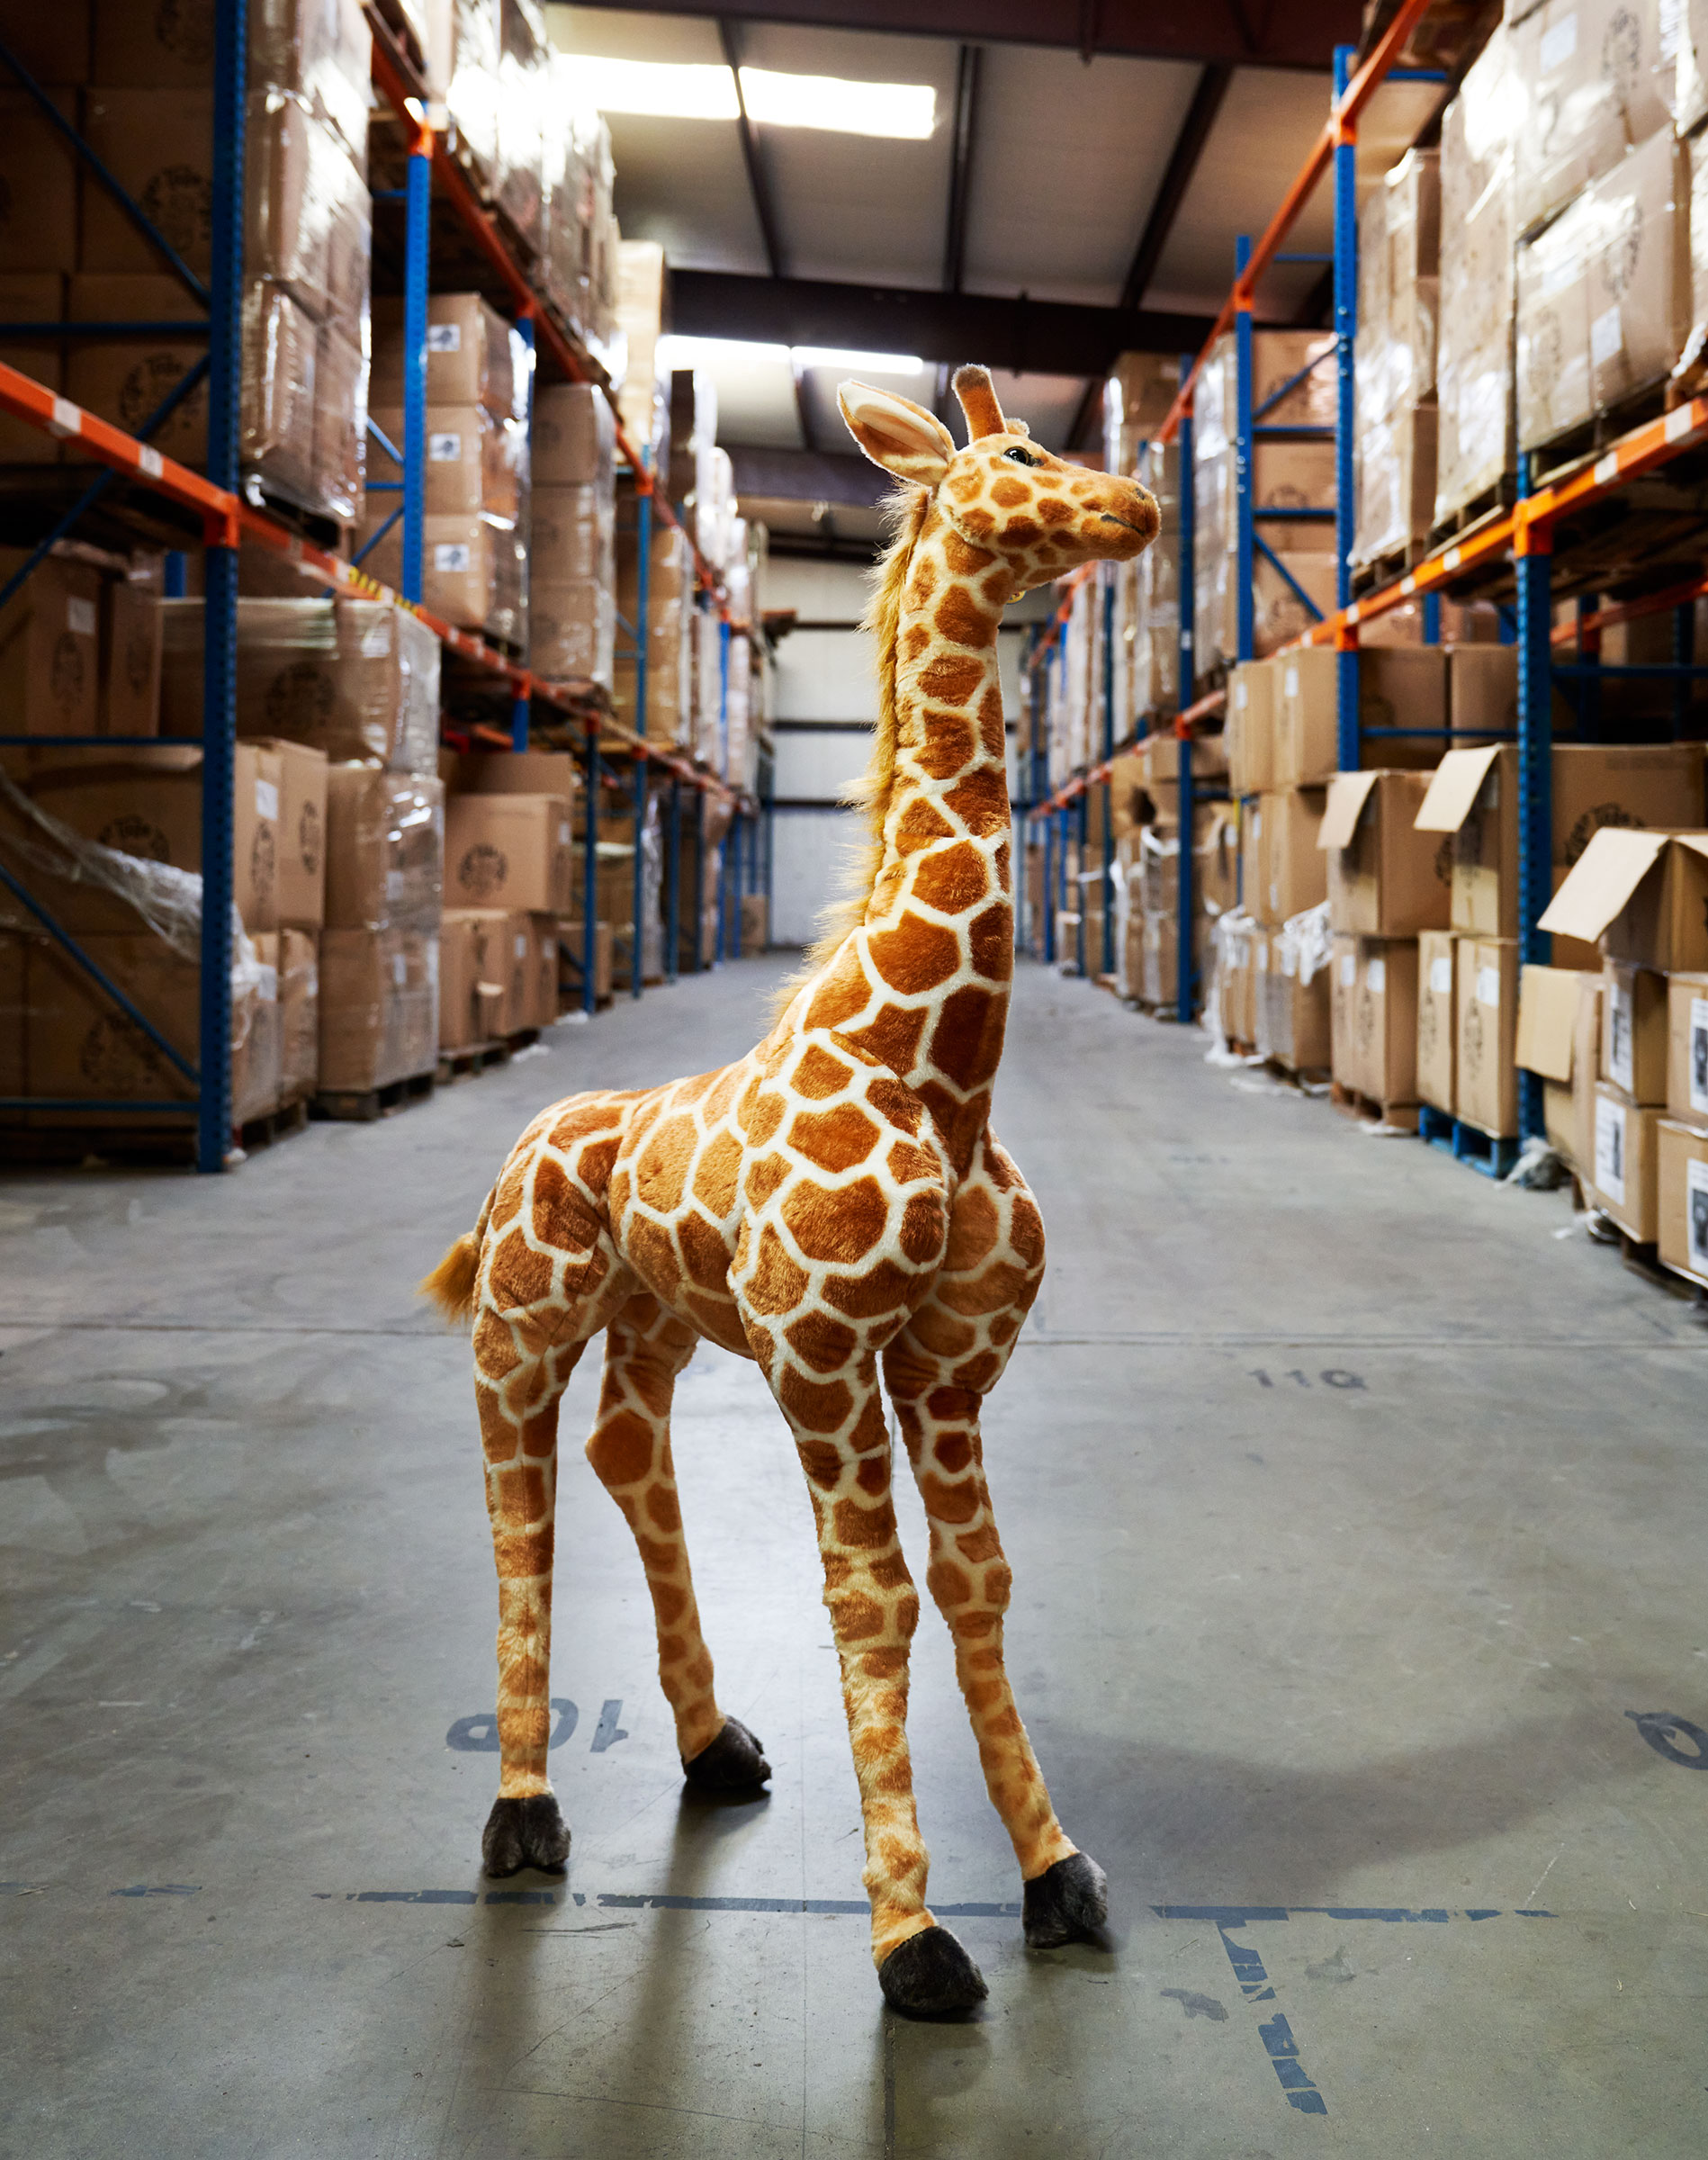 Jani the giraffe at the Viahart distribution facility in Wills Point, Texas on July 23, 2021.